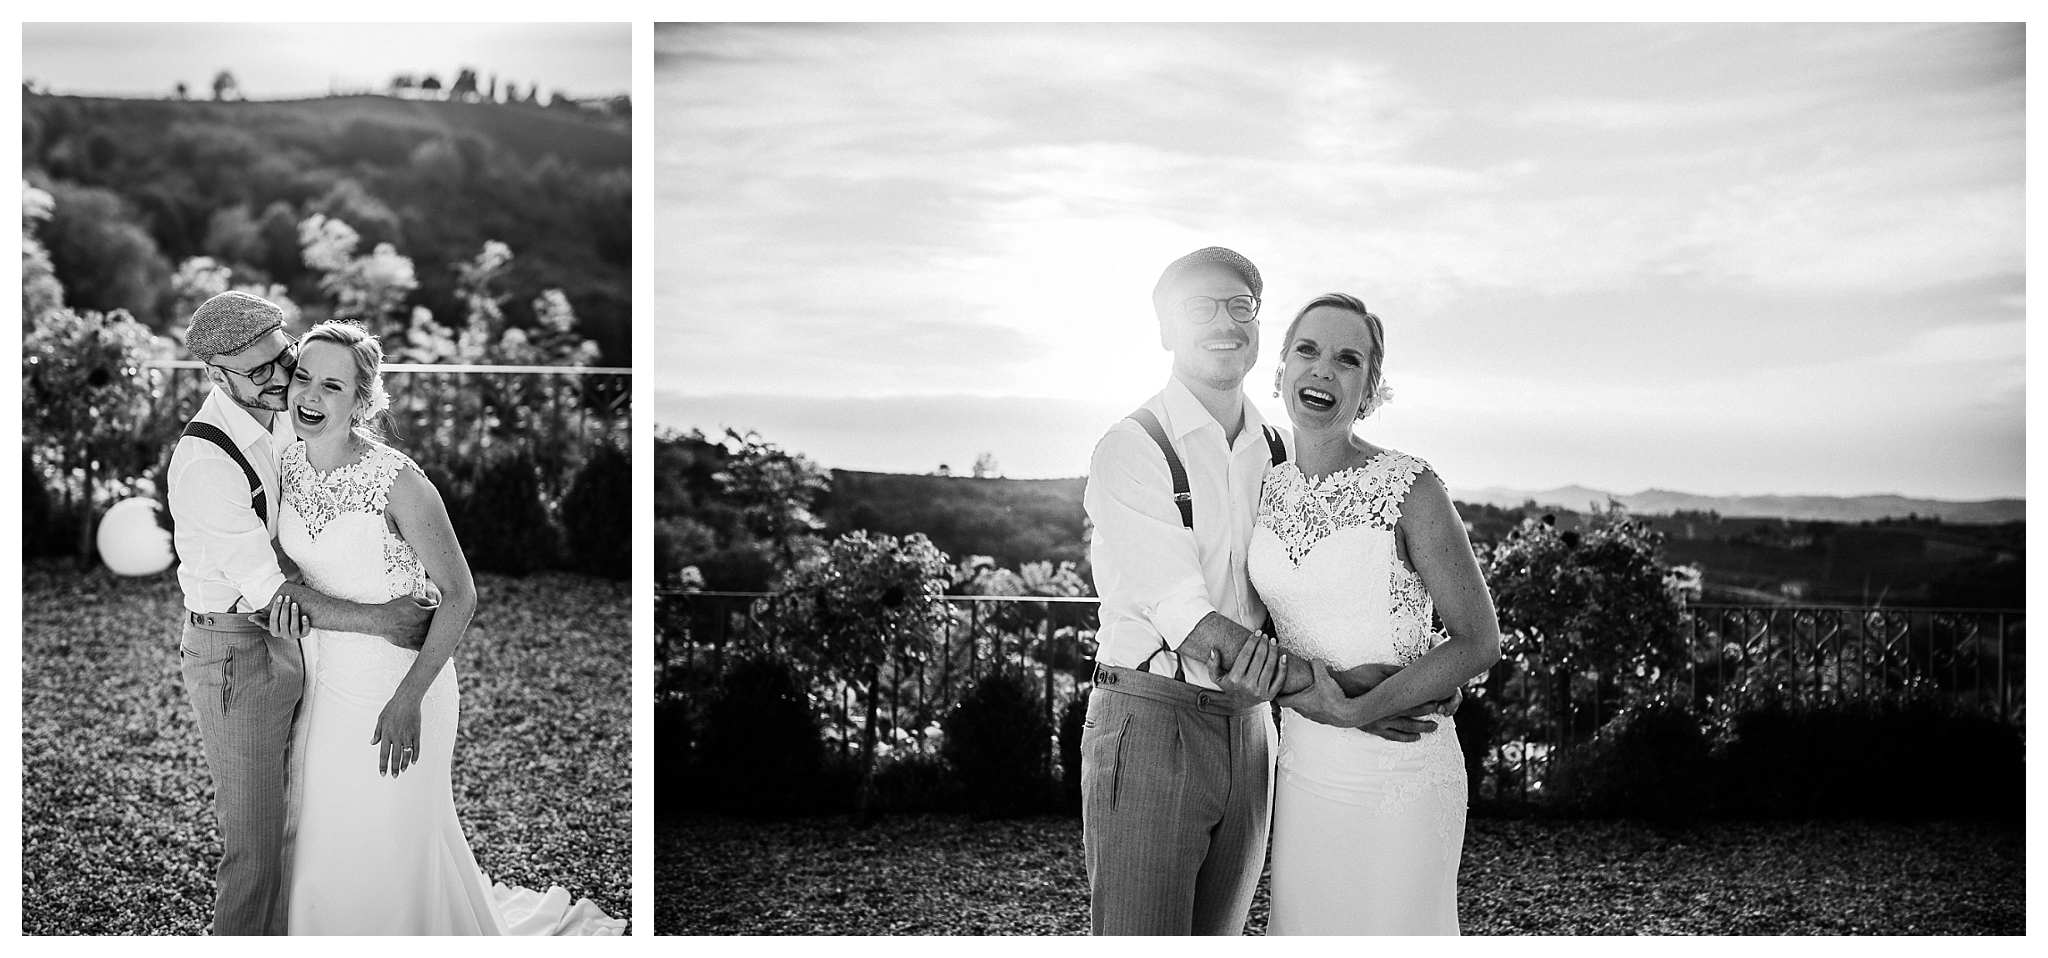 spontaneous and emotional wedding photography in Italy at La Villa Hotel, Mombaruzzo